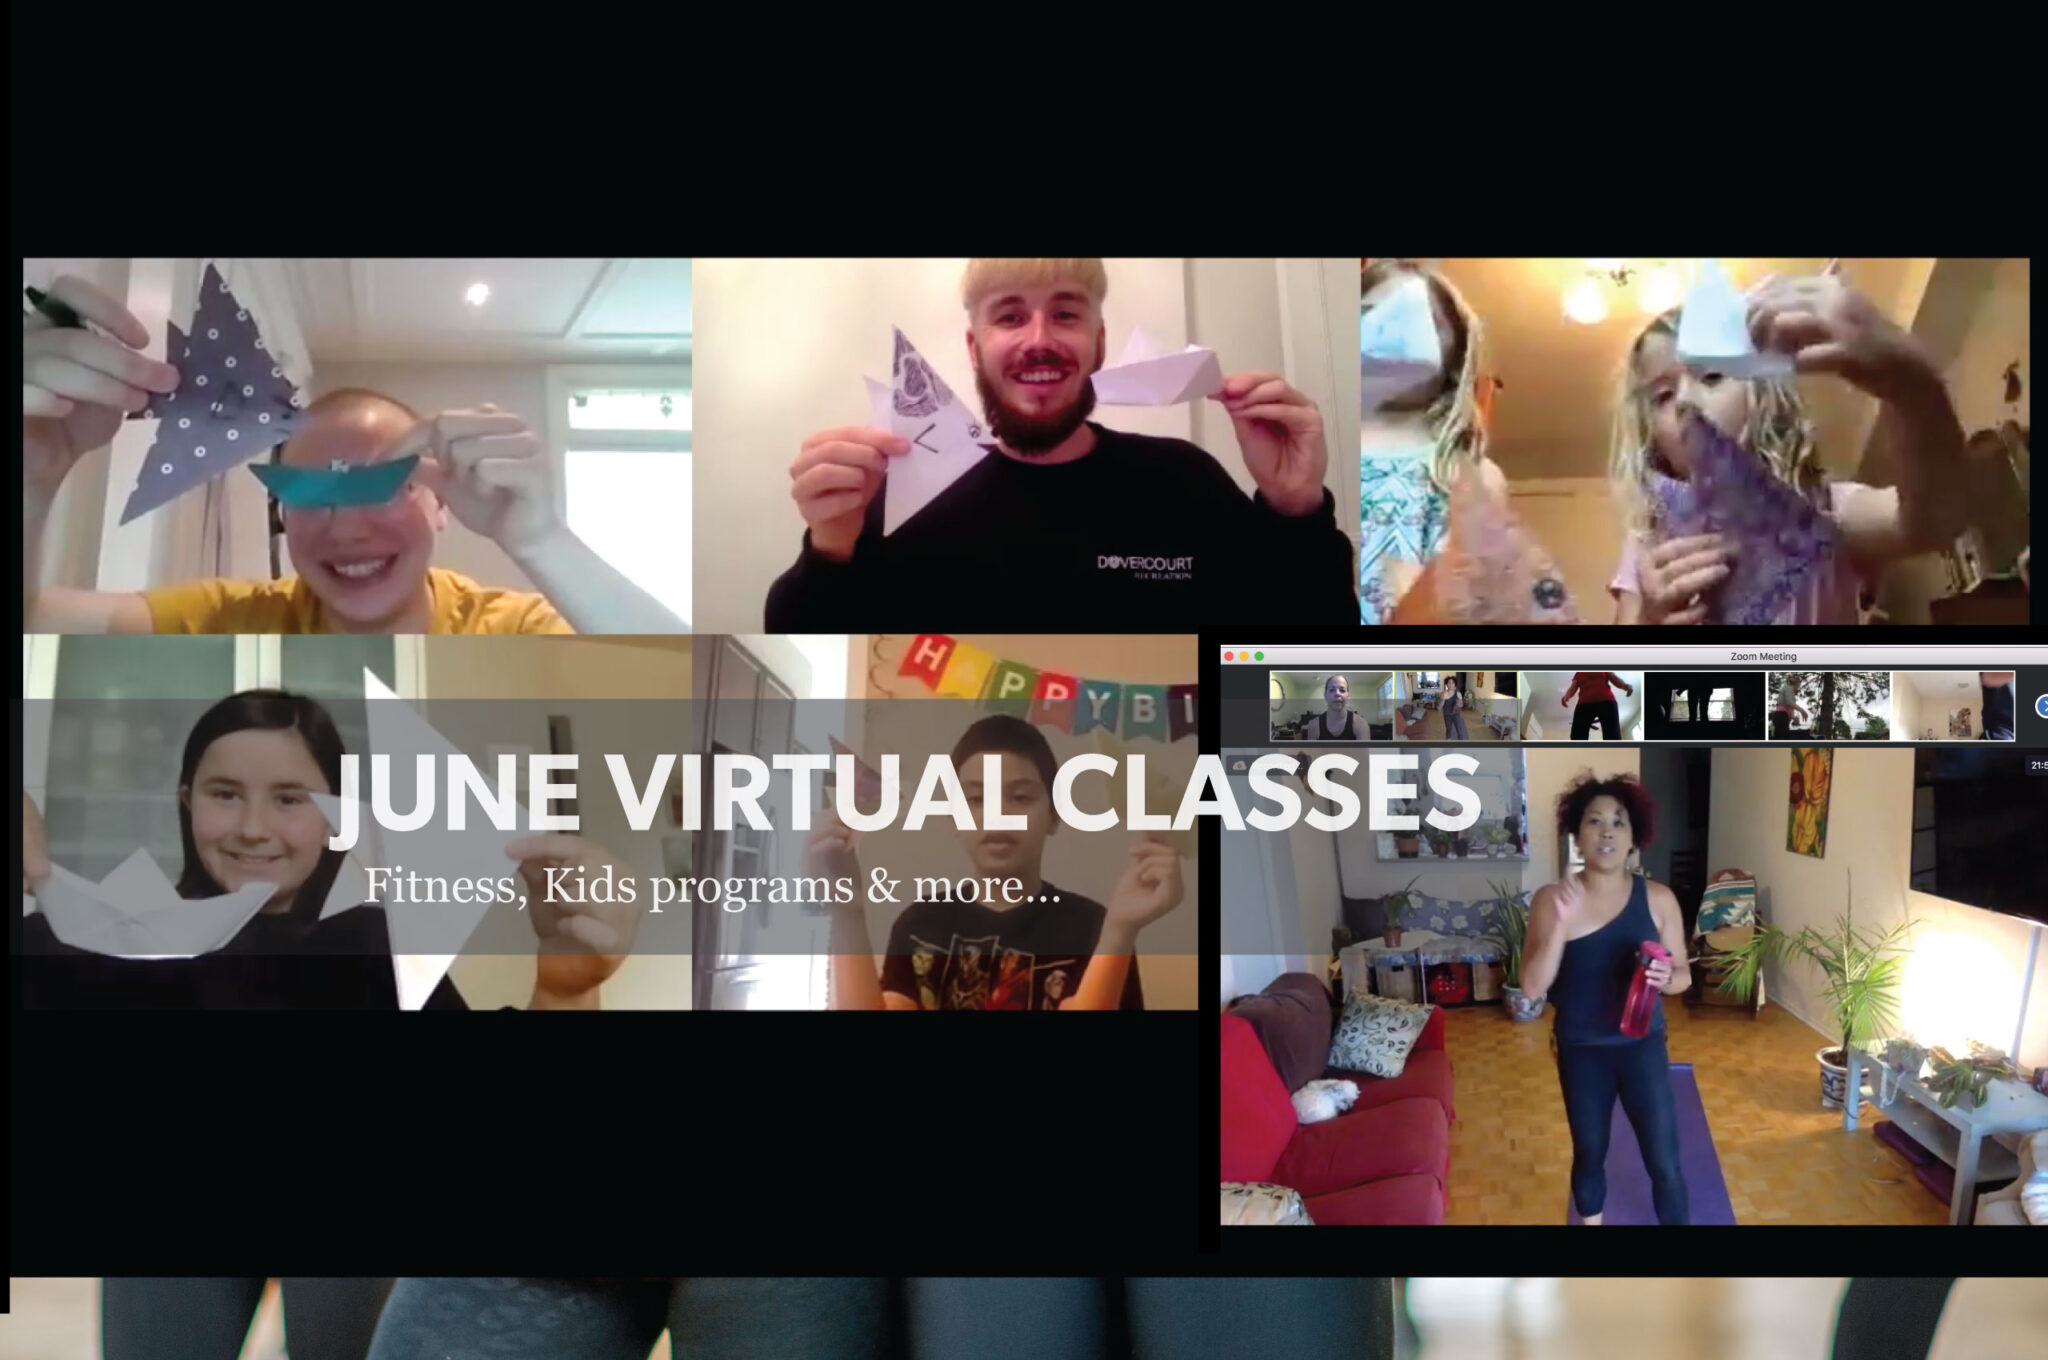 June virtual classes: fitness, kids programs & more